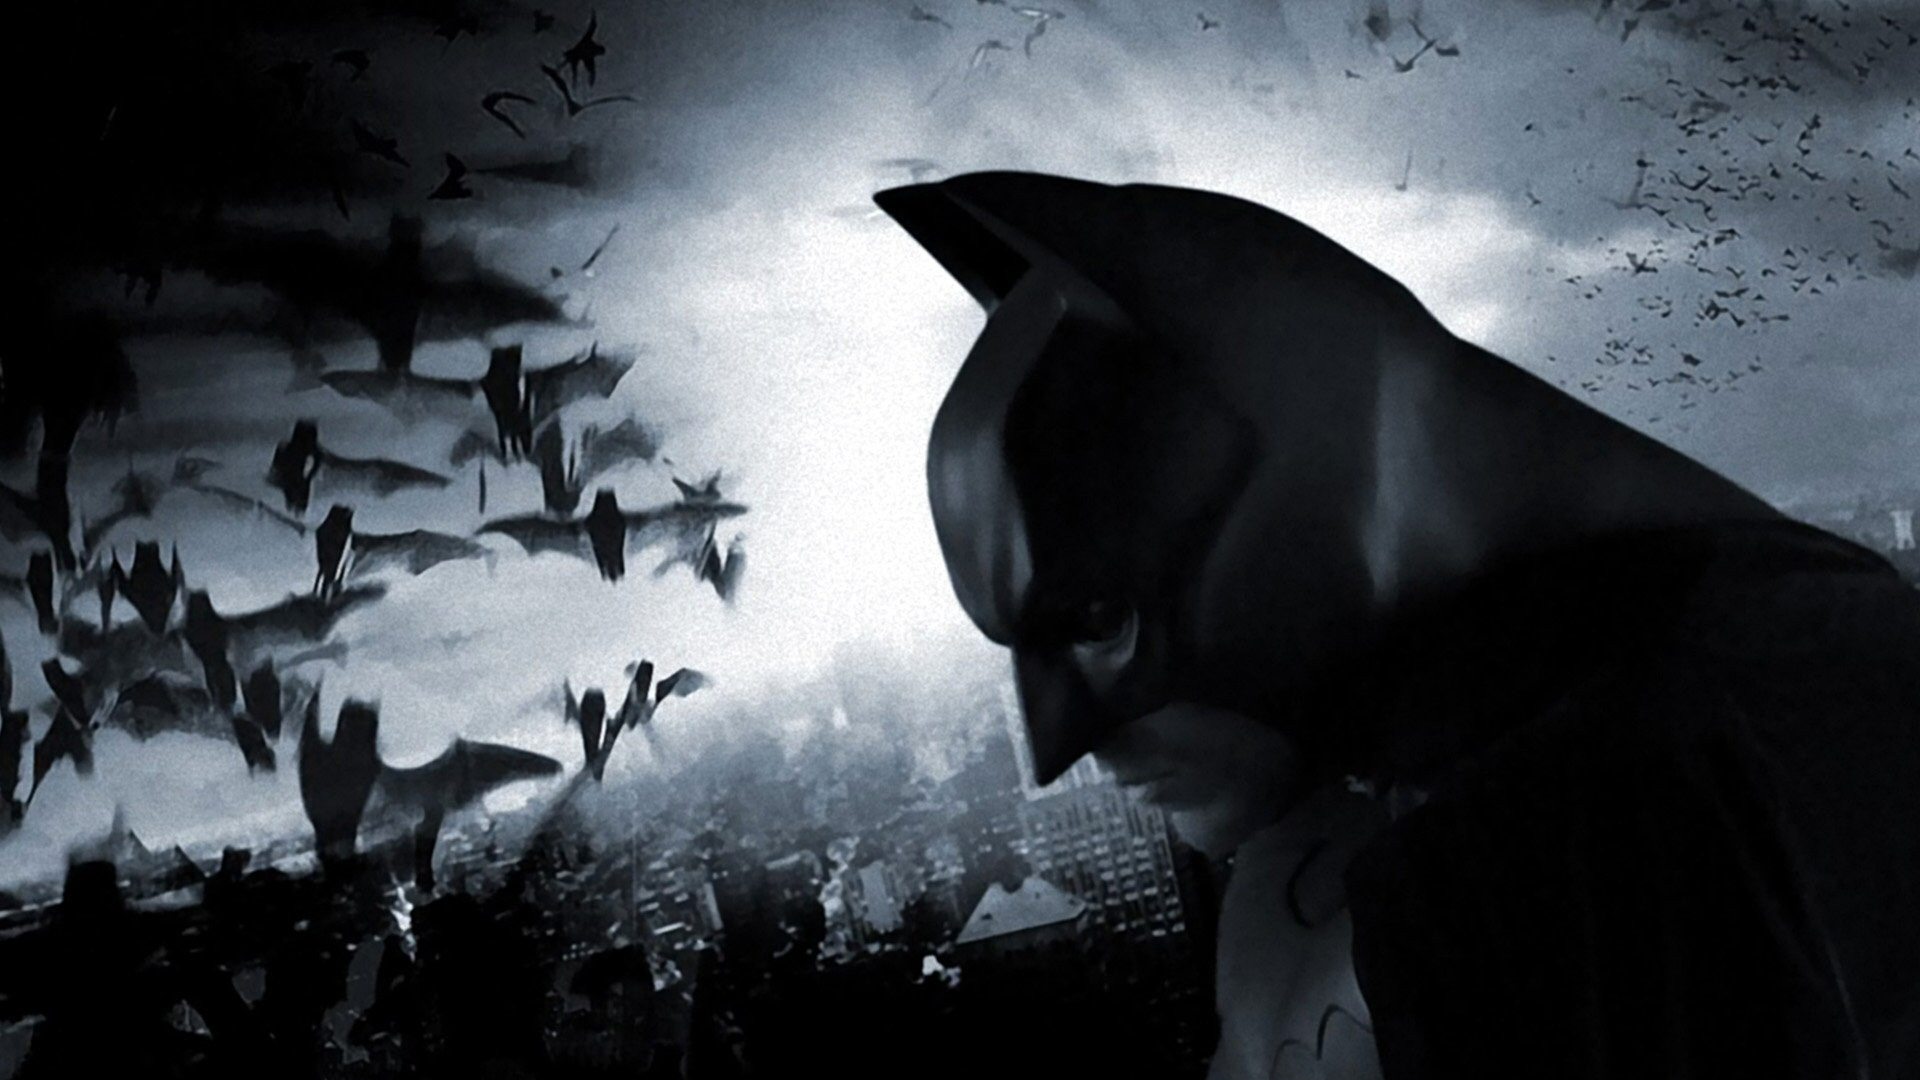 The best Batman wallpaper ever Batman wallpapers 1920x1080